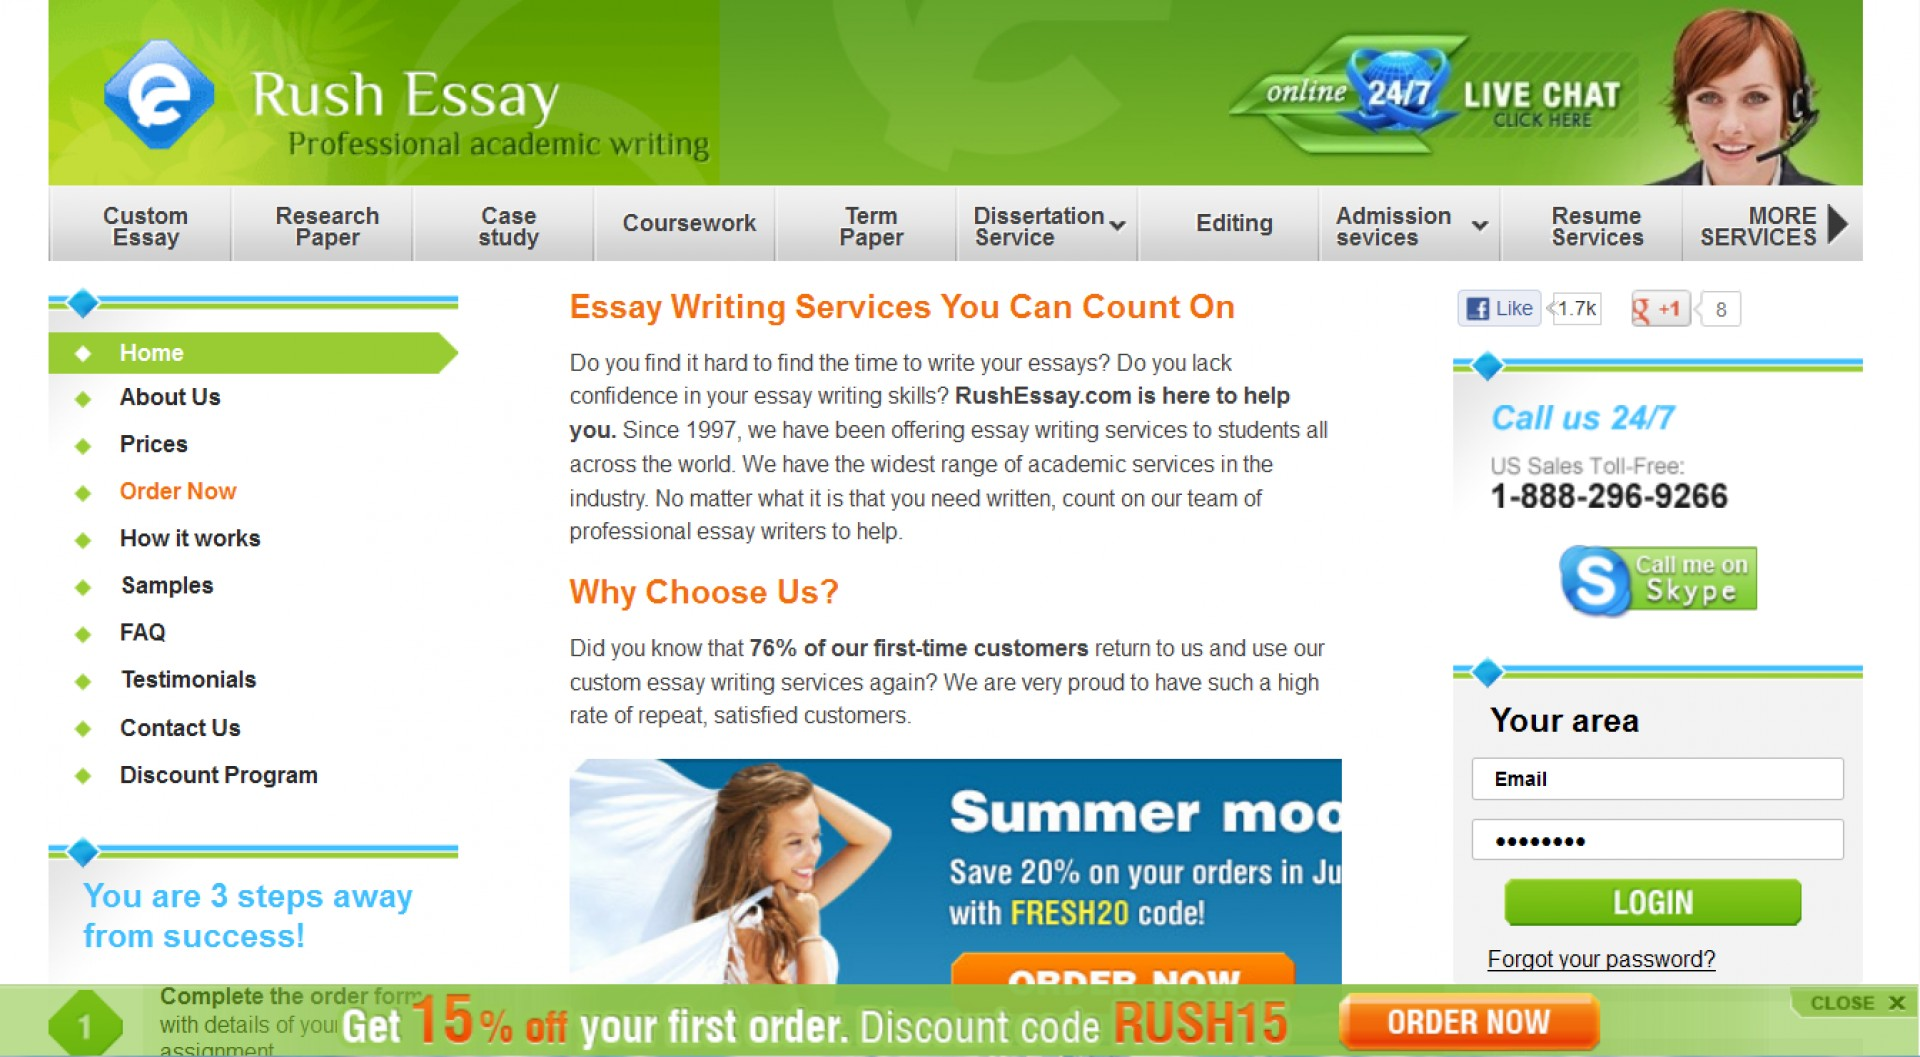 008 Rush Essay Review Example Best My Reviews 1920